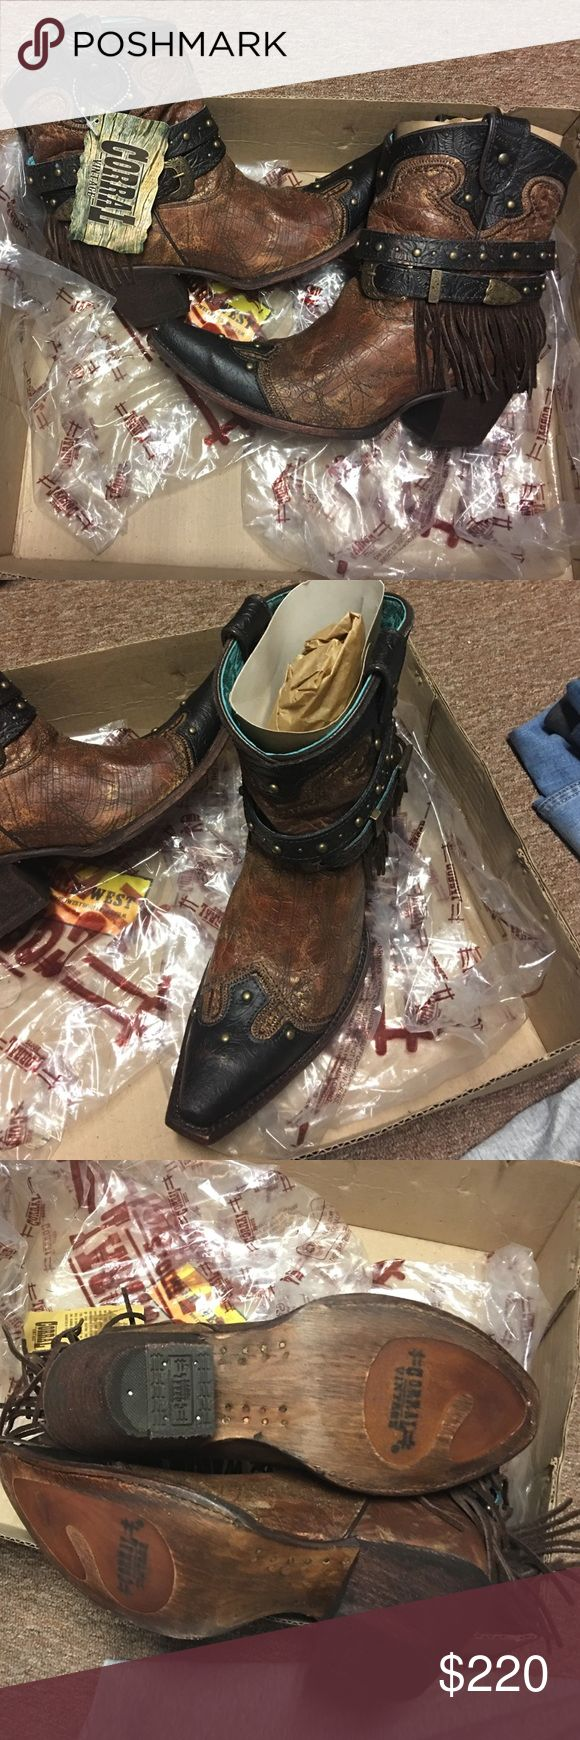 WEEKEND SALE ONLY! CORRAL SIZE 9 booties Bran new! Still in the box! Never been worn! These are so cute! And the price is AWESOME! Corral Vintage Boots Shoes Ankle Boots & Booties